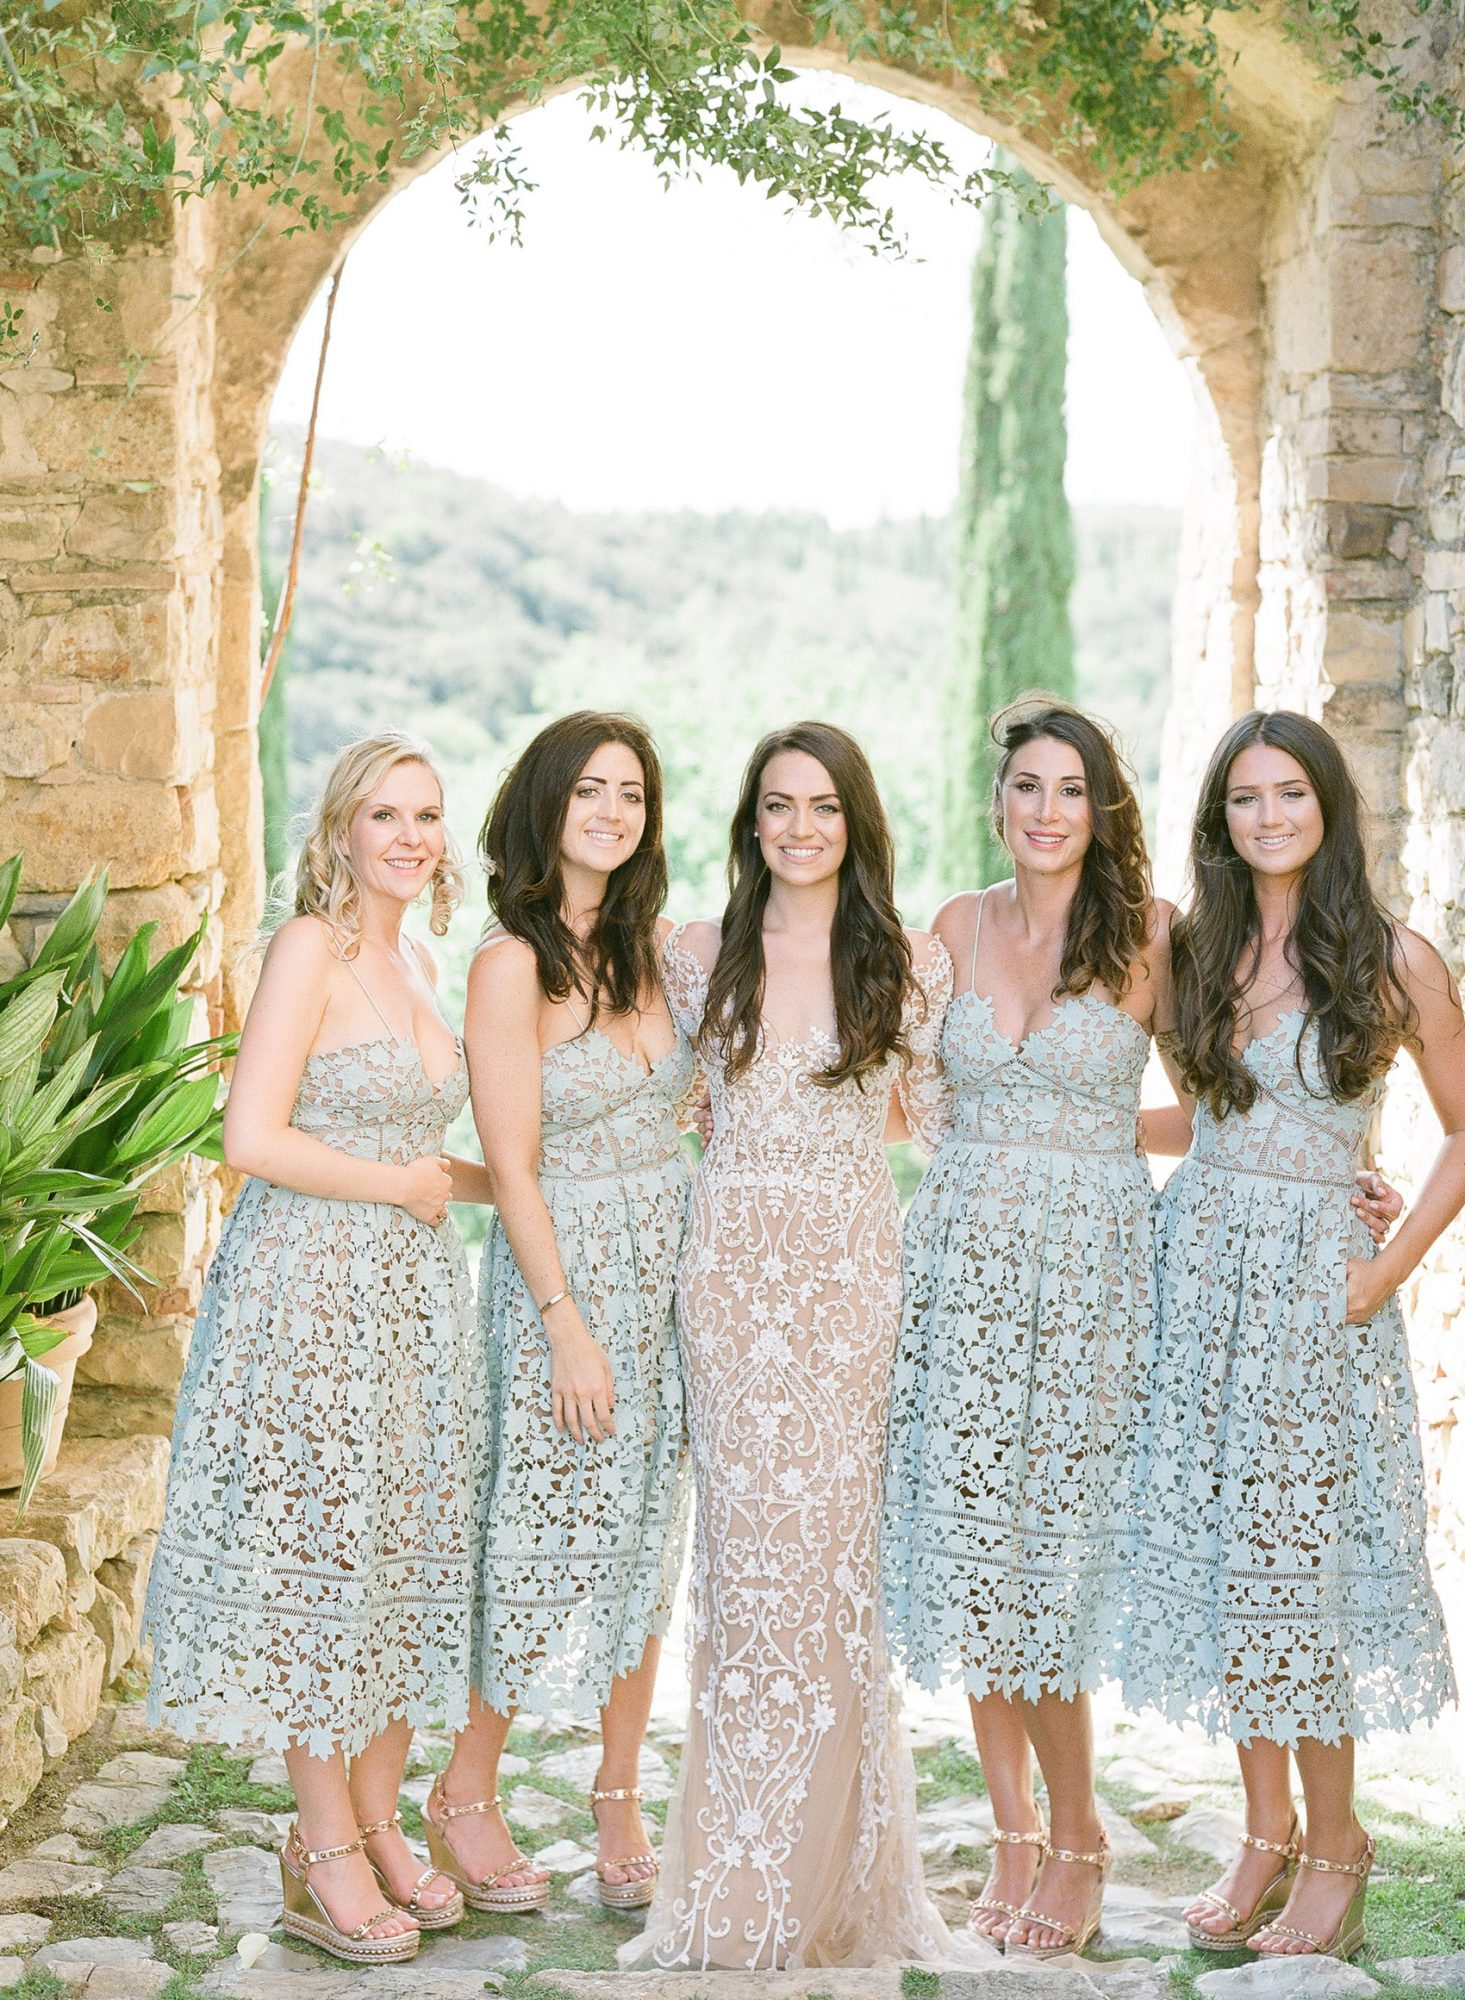 Order Your Bridesmaids' Dresses